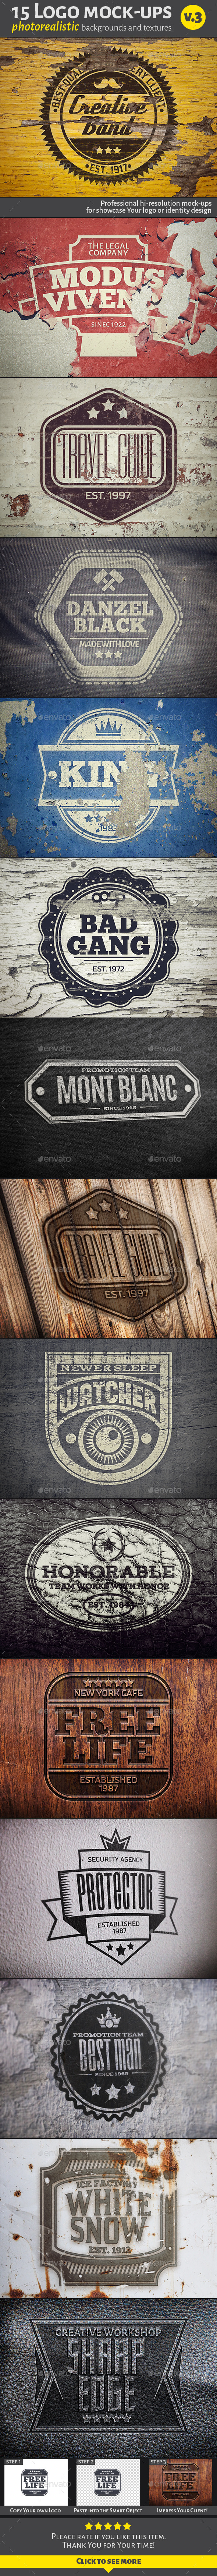 GraphicRiver 15 Logo Mock-Ups v.3 10953584